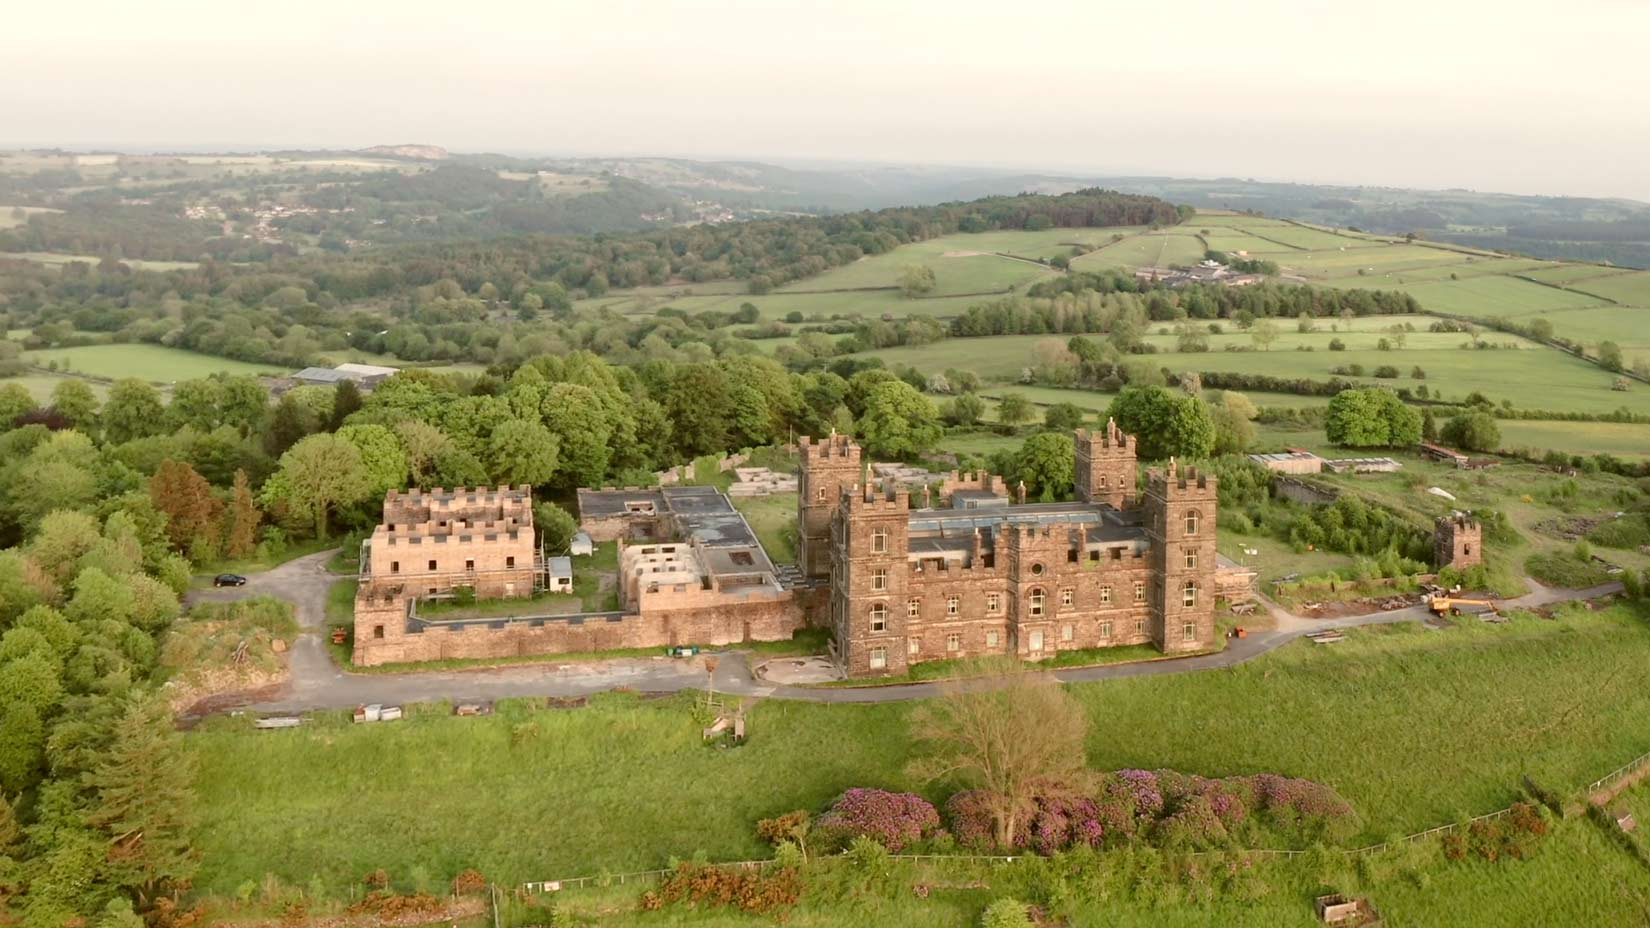 Riber Castle drone shot from above early evening with Crich stand visible in the background